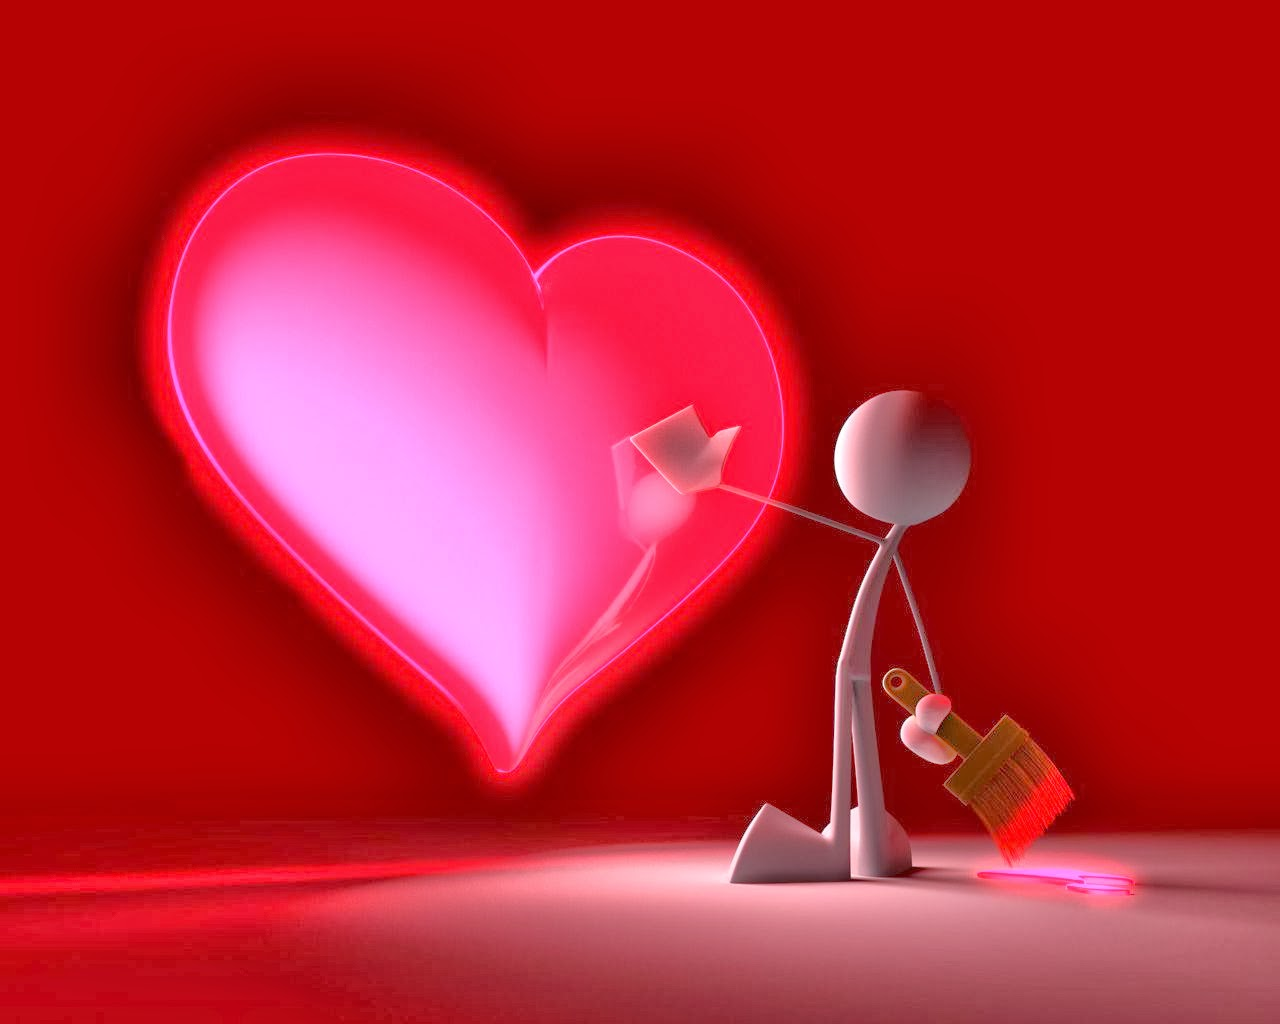 Love Images Wallpaper Mobile : Beautiful Love Wallpapers for Mobile - WallpaperSafari